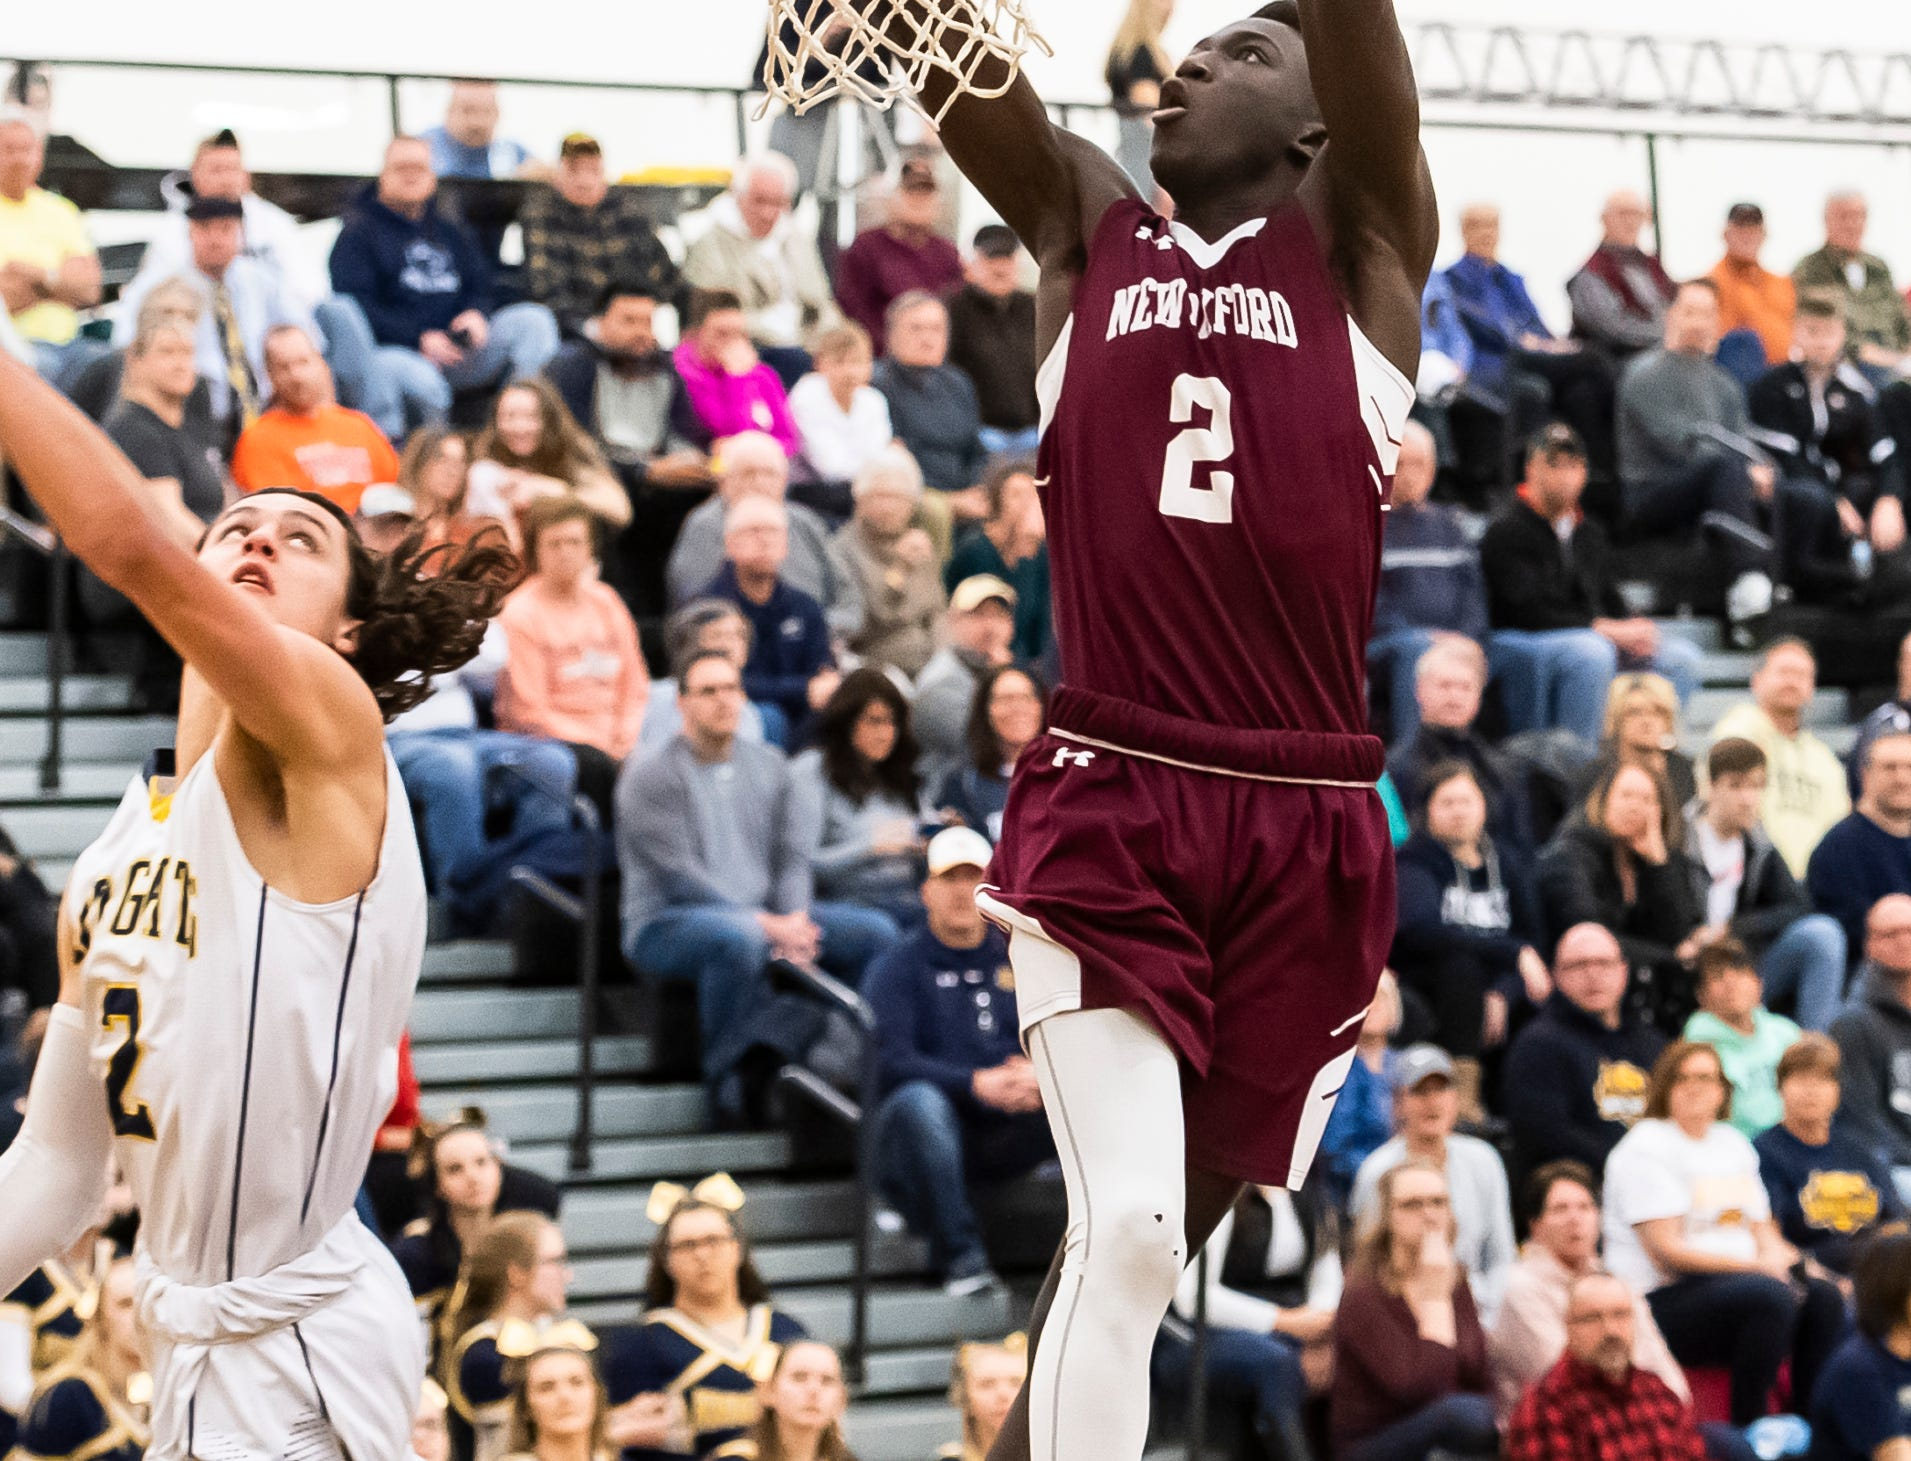 """New Oxford's Abdul Janneh dunks the ball during play against Eastern York in a YAIAA quarterfinal game at Red Lion High School Saturday, February 9, 2019. Janneh led all players with 20 points. """"How do you guard this guy?"""" New Oxford head coach Sean Bair said of Janneh. """"He's been very good the last month. I couldn't be more happy for him."""""""